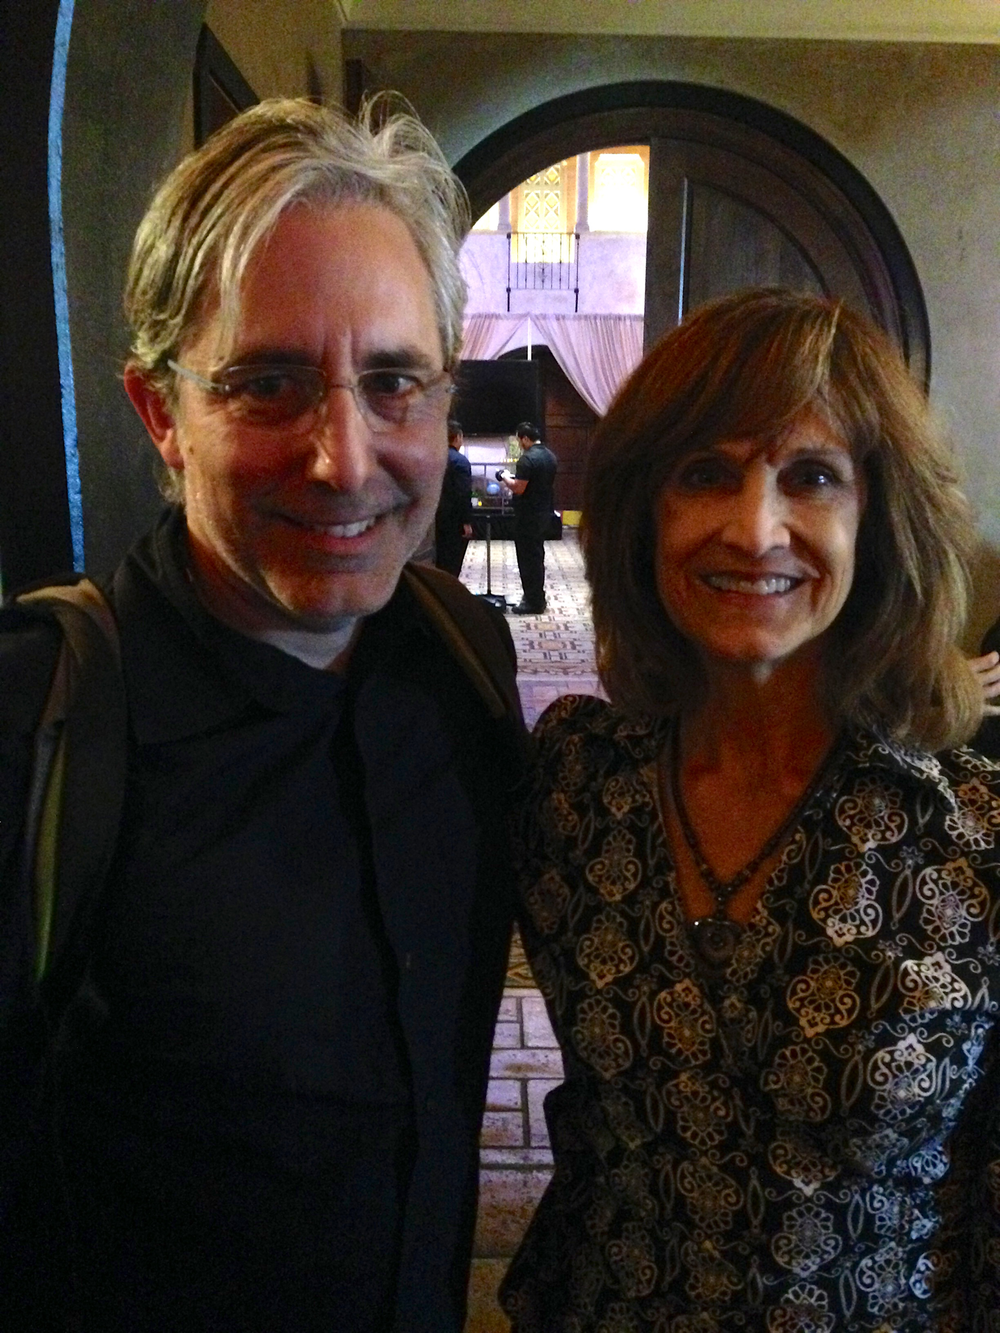 Paul Weitz and Heather Lea Gerdes @ Mozart in the Jungle FYC, The Hollywood Roosevelt Hotel